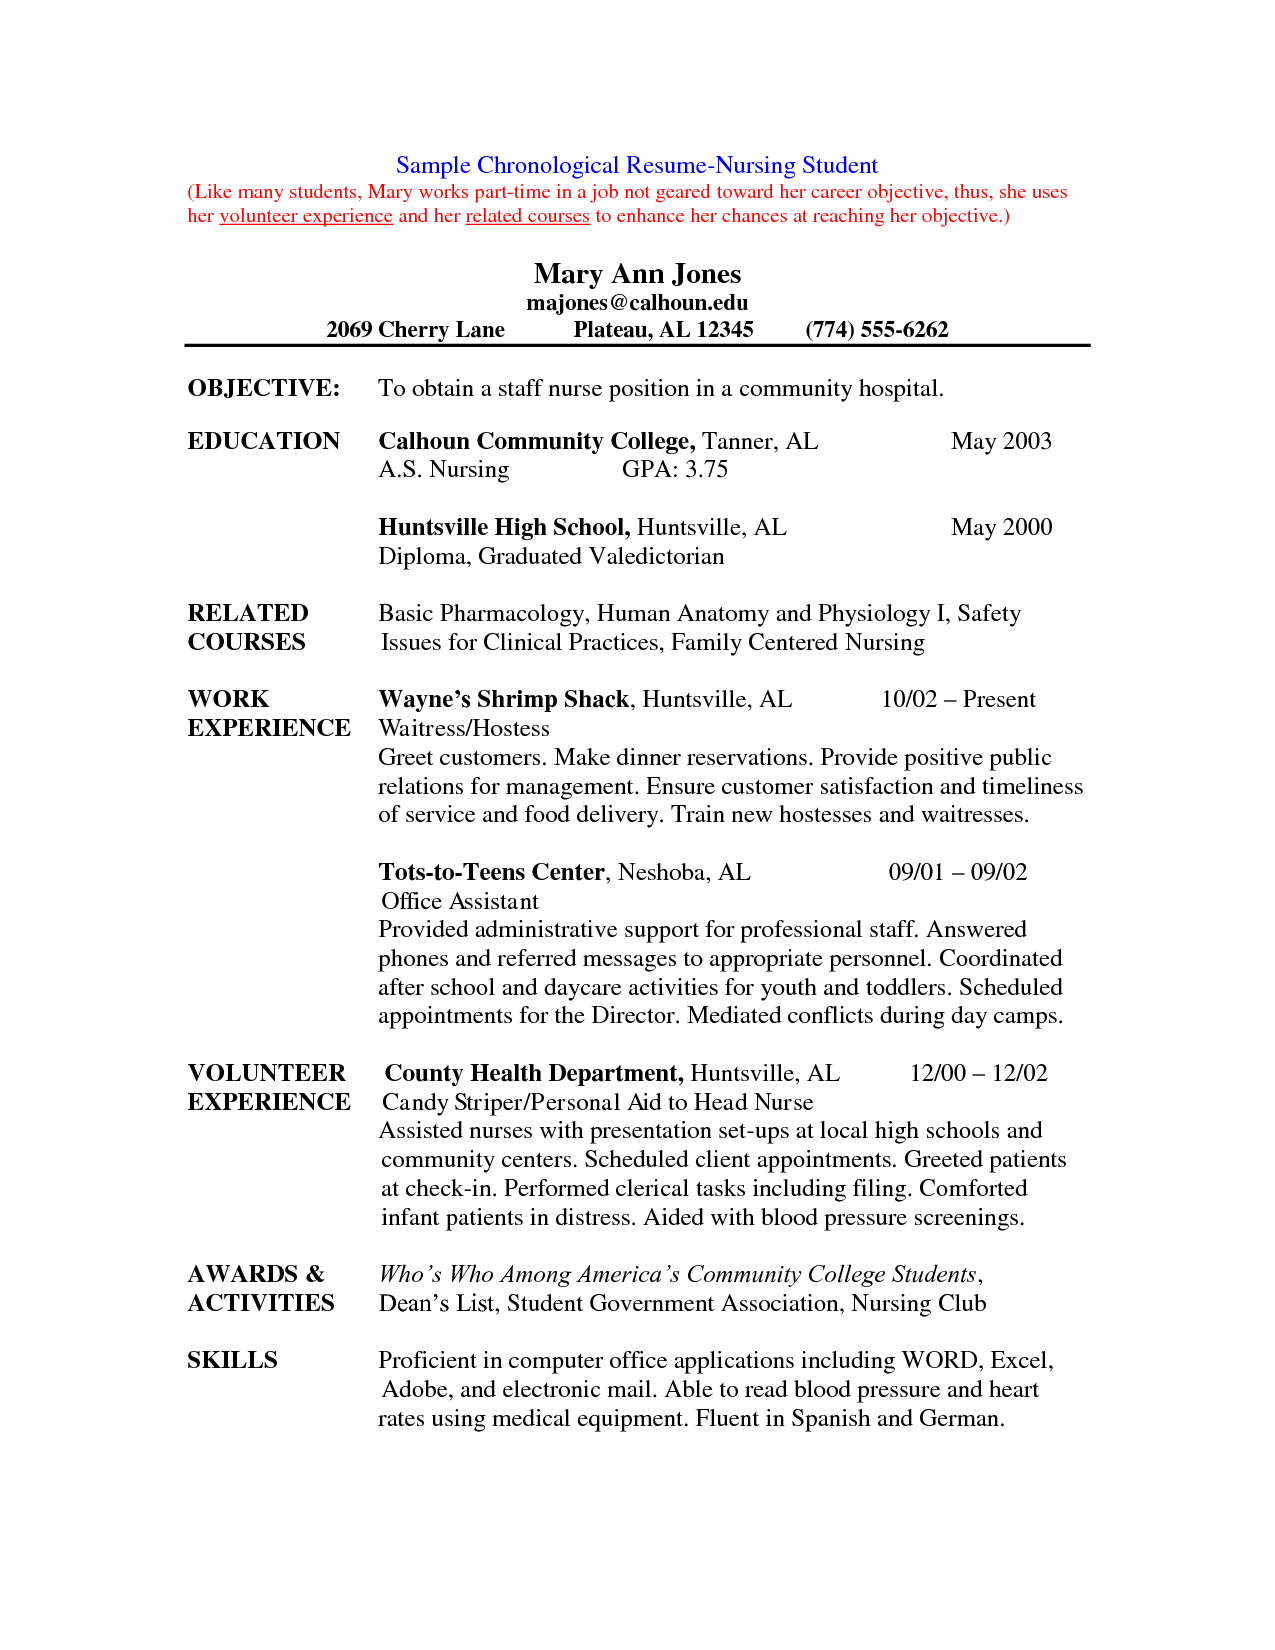 Cover Letters For Nursing Job Application Pdf Nursing